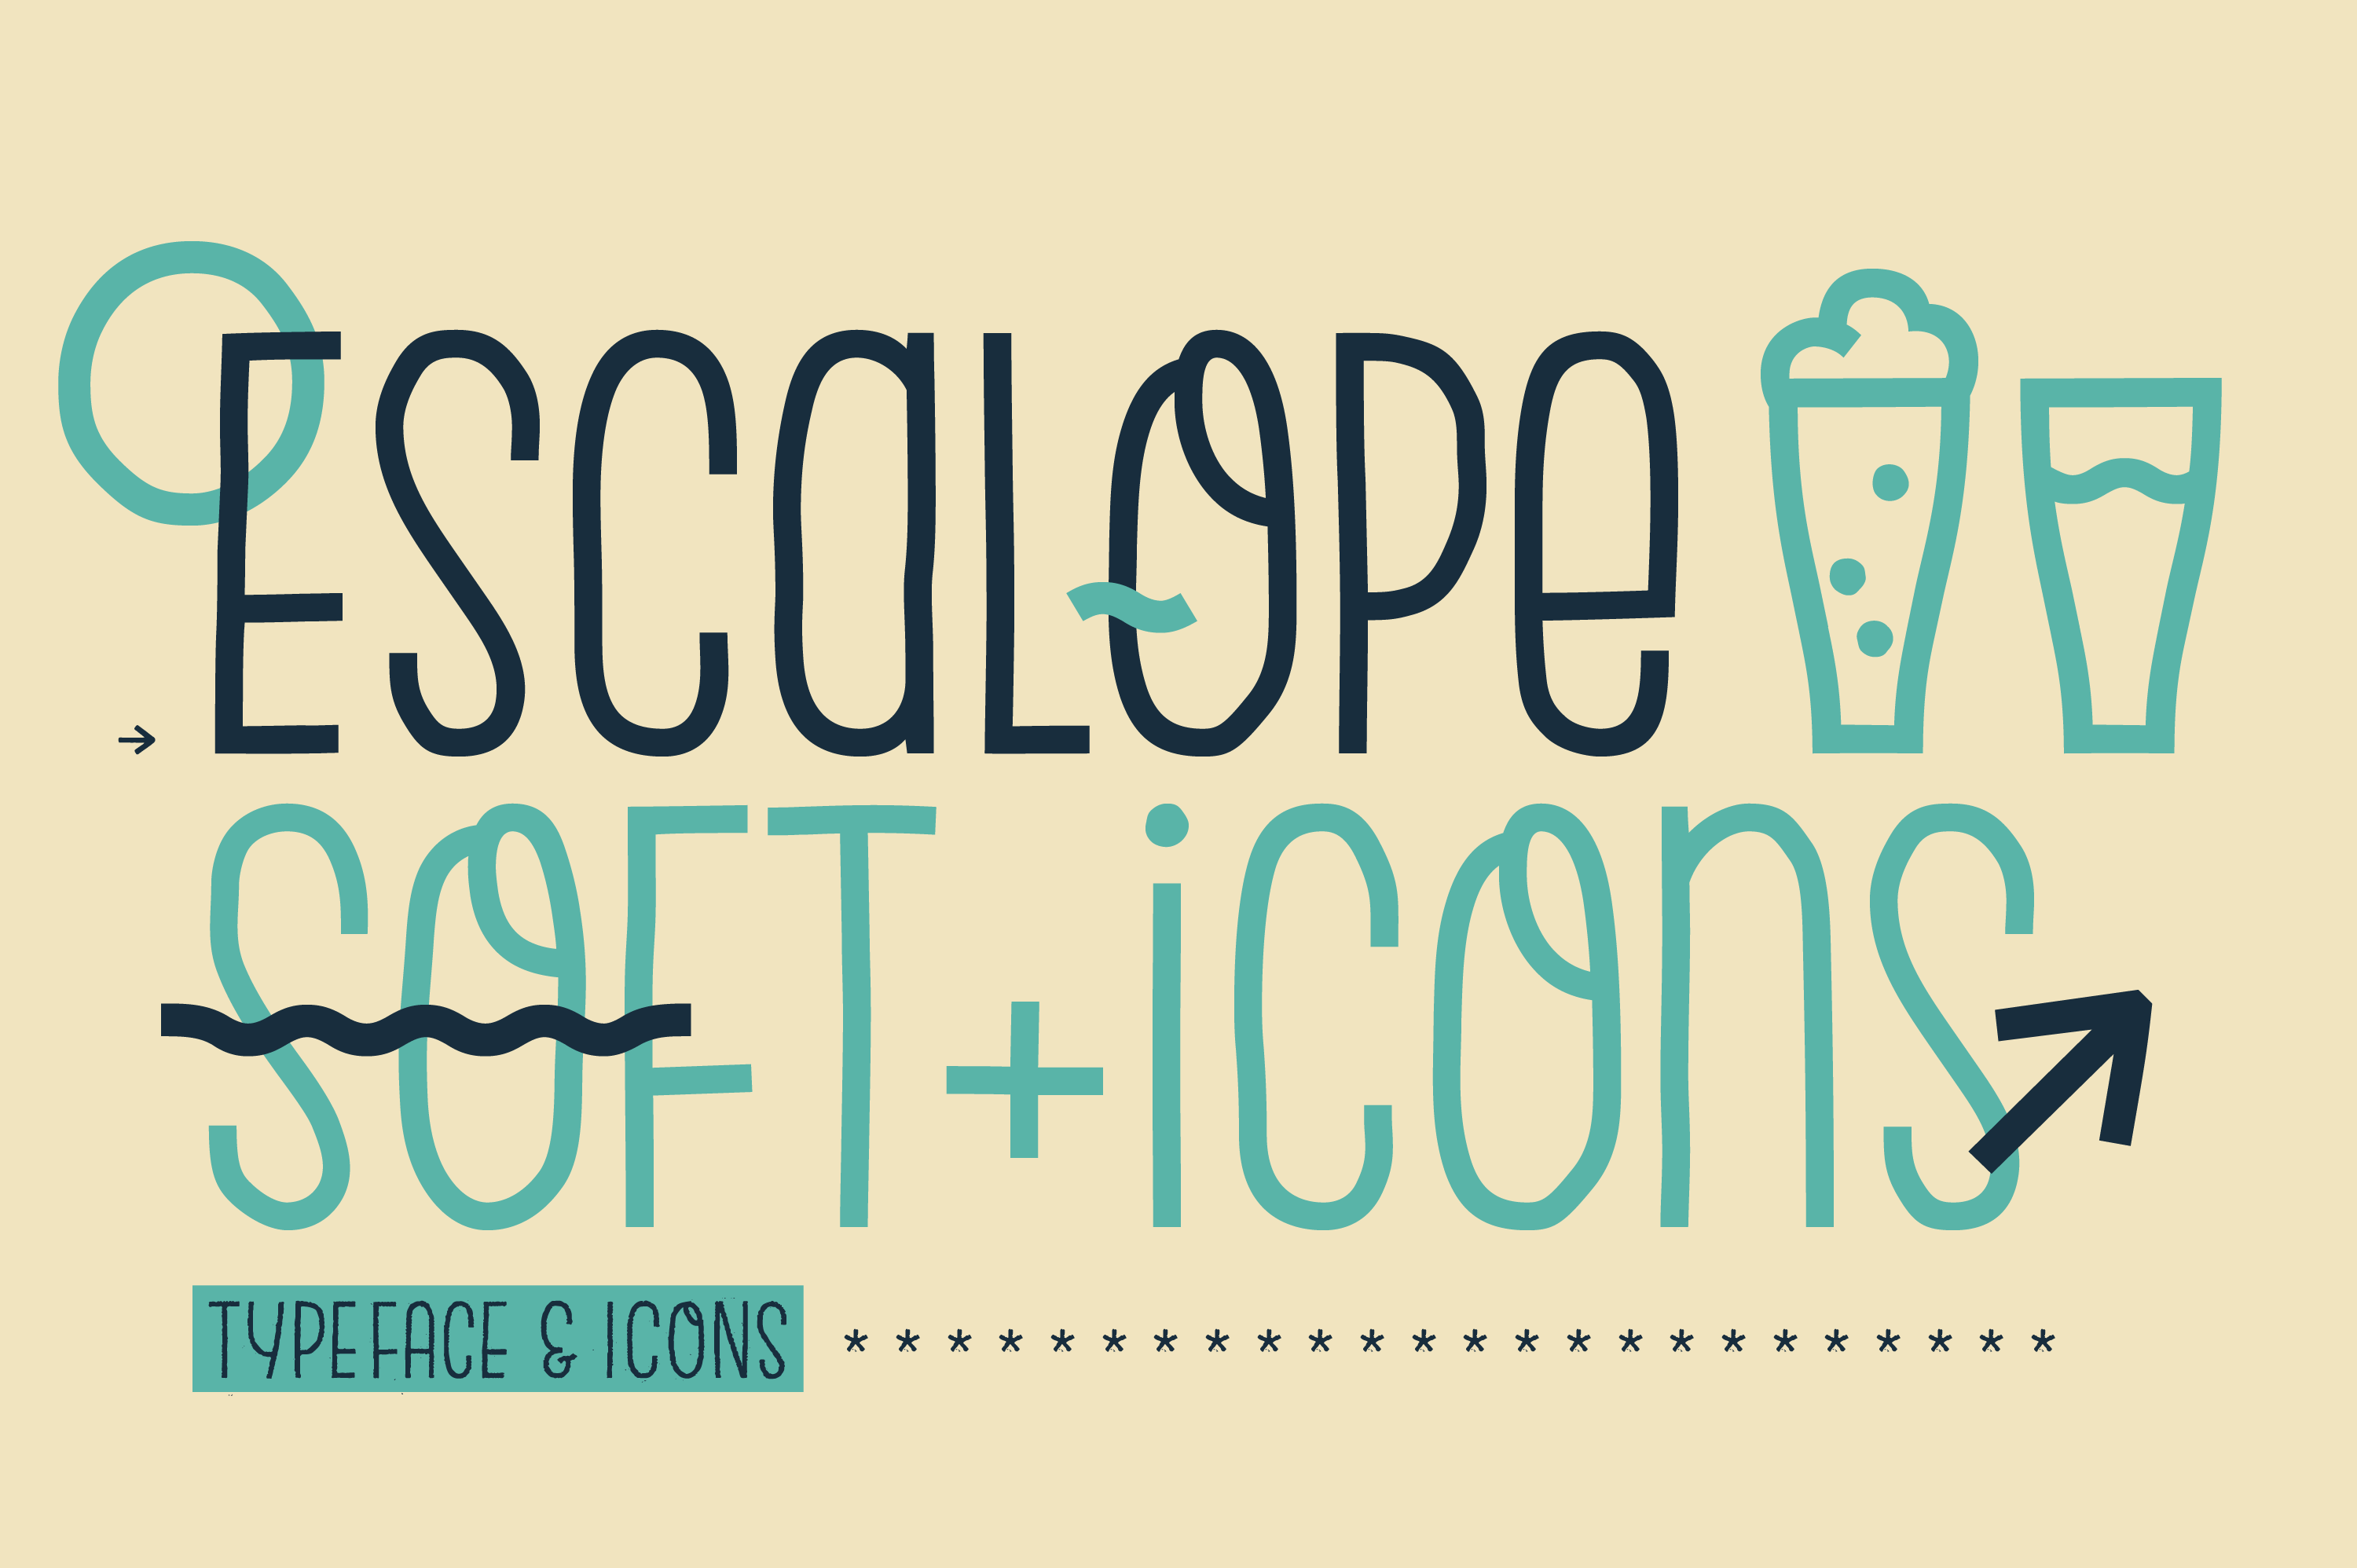 Escalope Soft + Icons example image 19